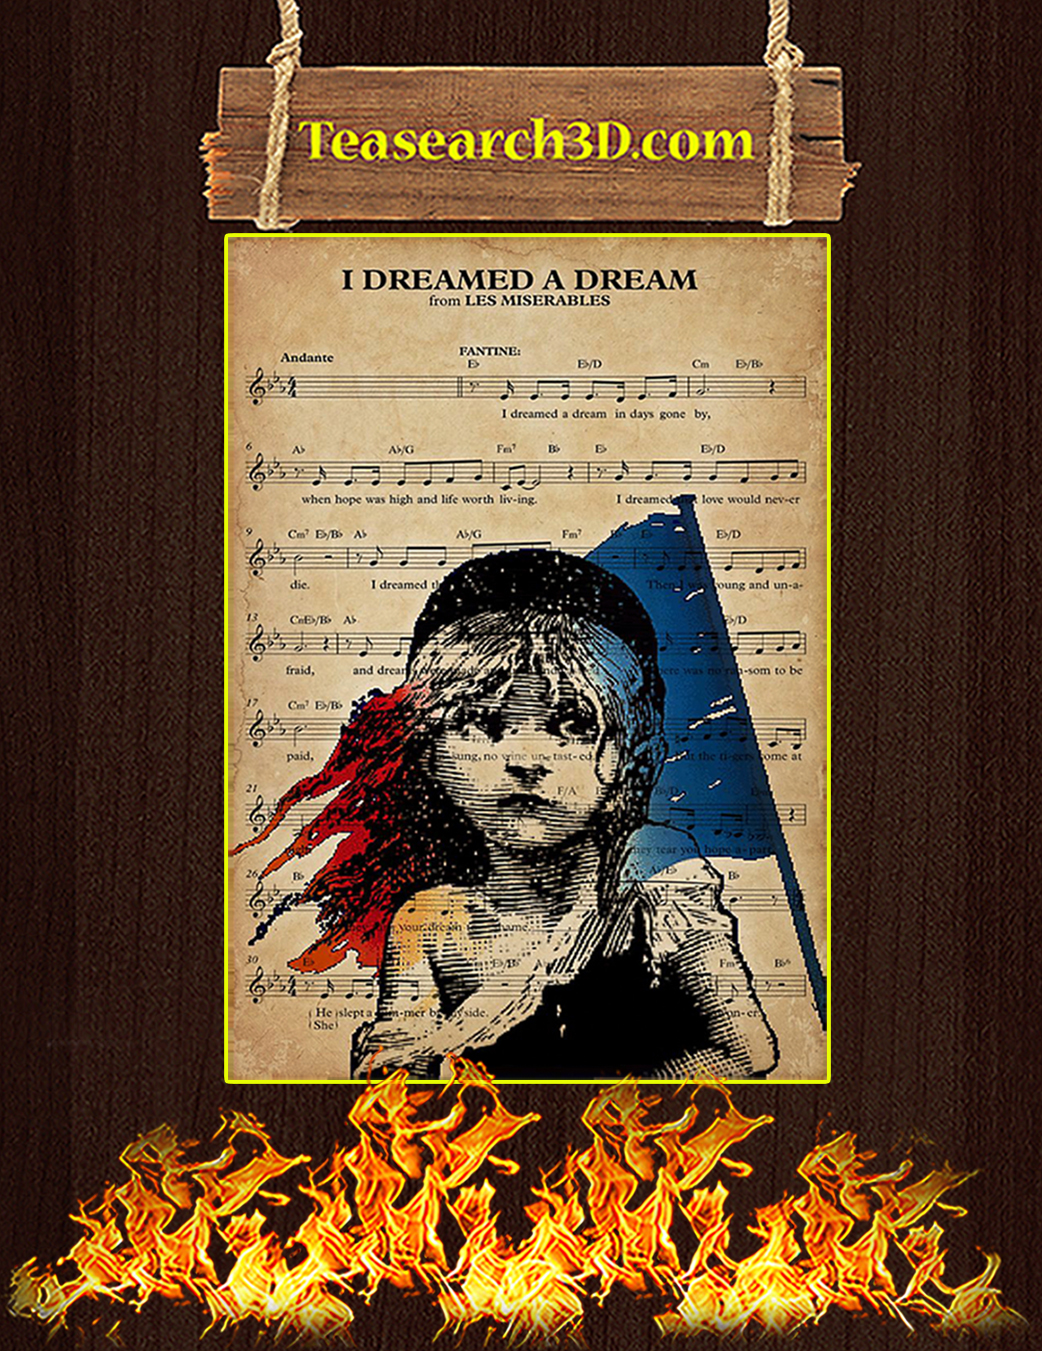 I dreamed a dream poster A1